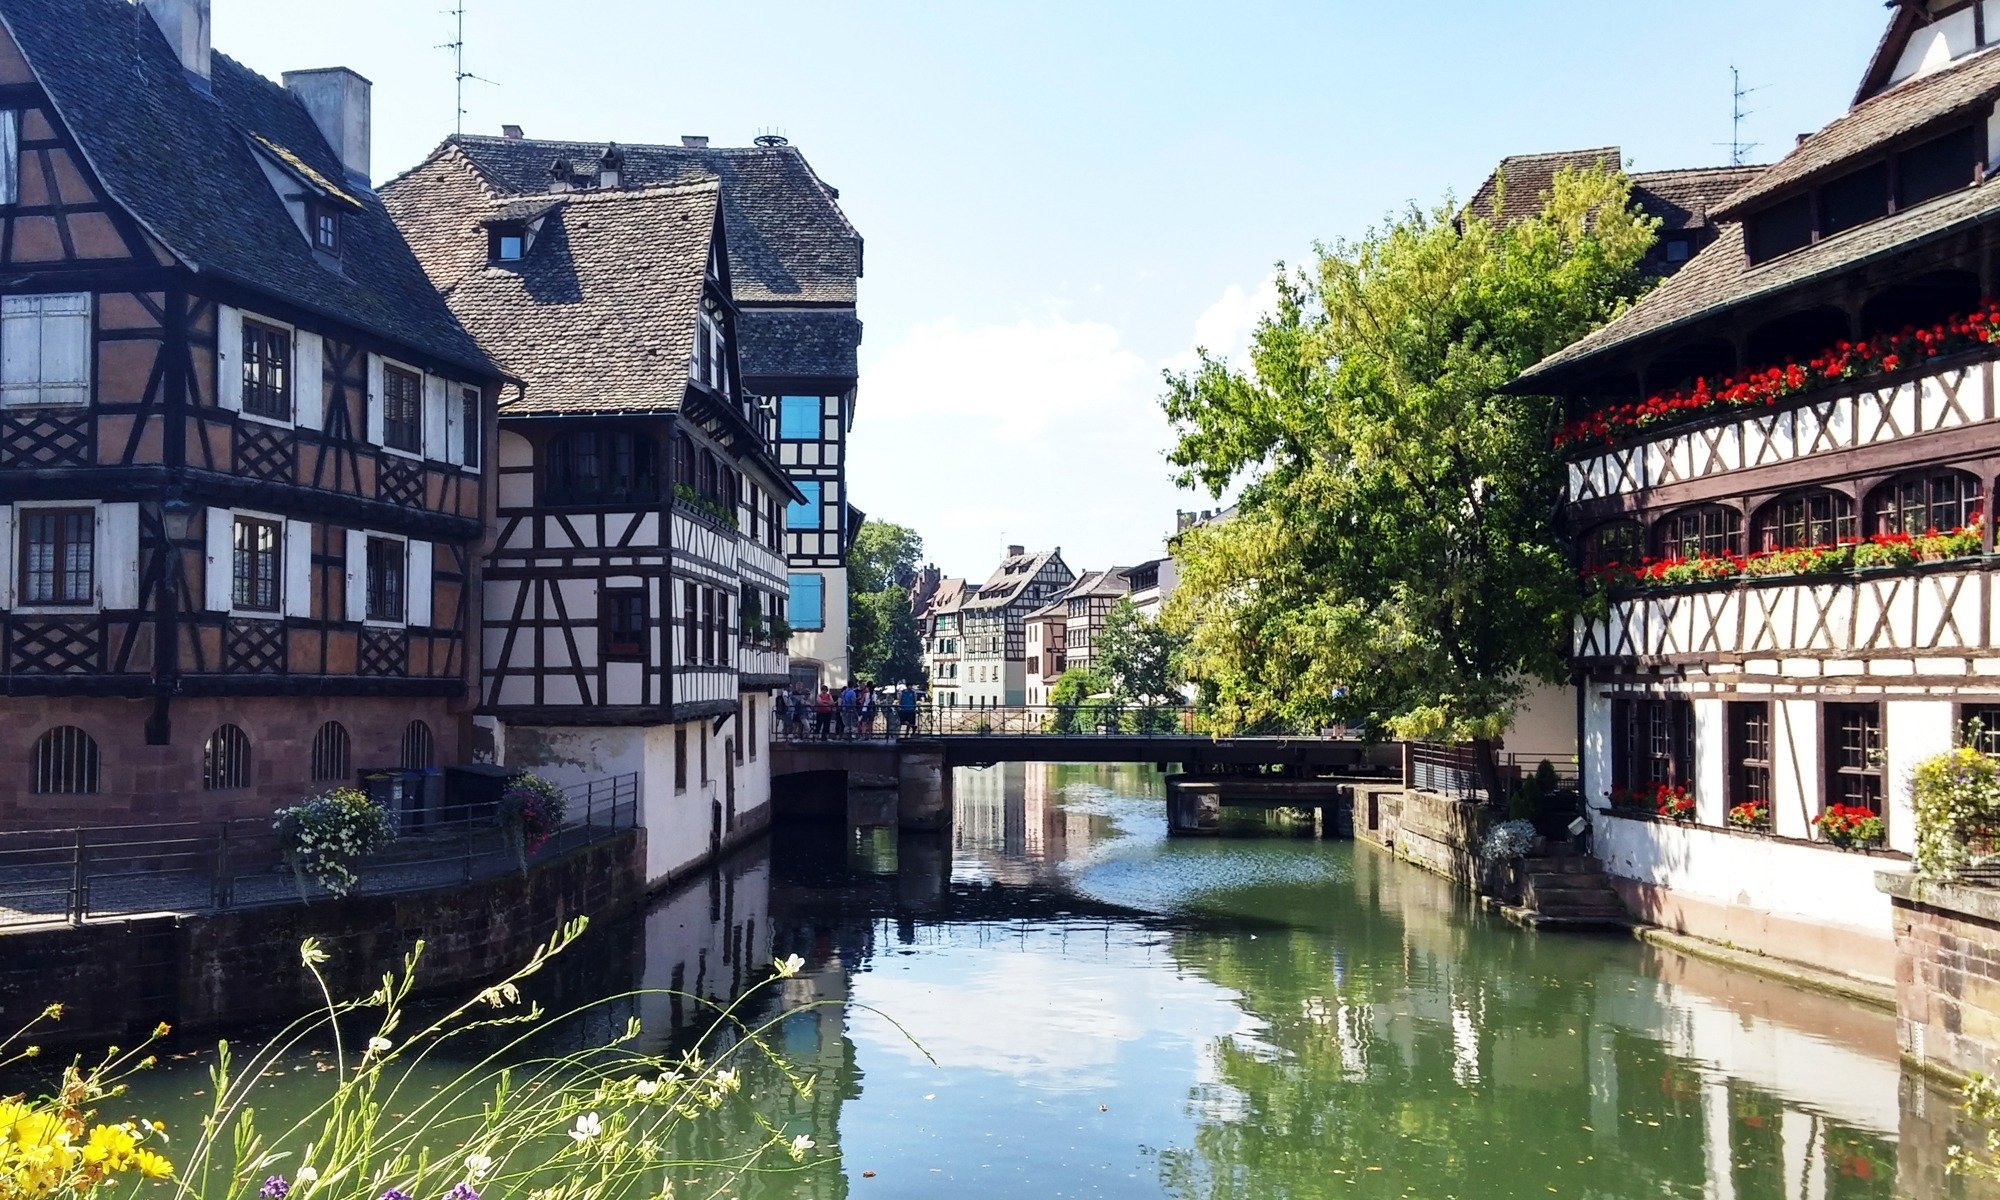 Begin your fairytale holiday in Petite France – the most enchanting place in Strasbourg. Stroll along the quiet River Ill past pastel houses and flower-decked bridges and take a thousand photos, relish the scene, and enjoy good food and wine.